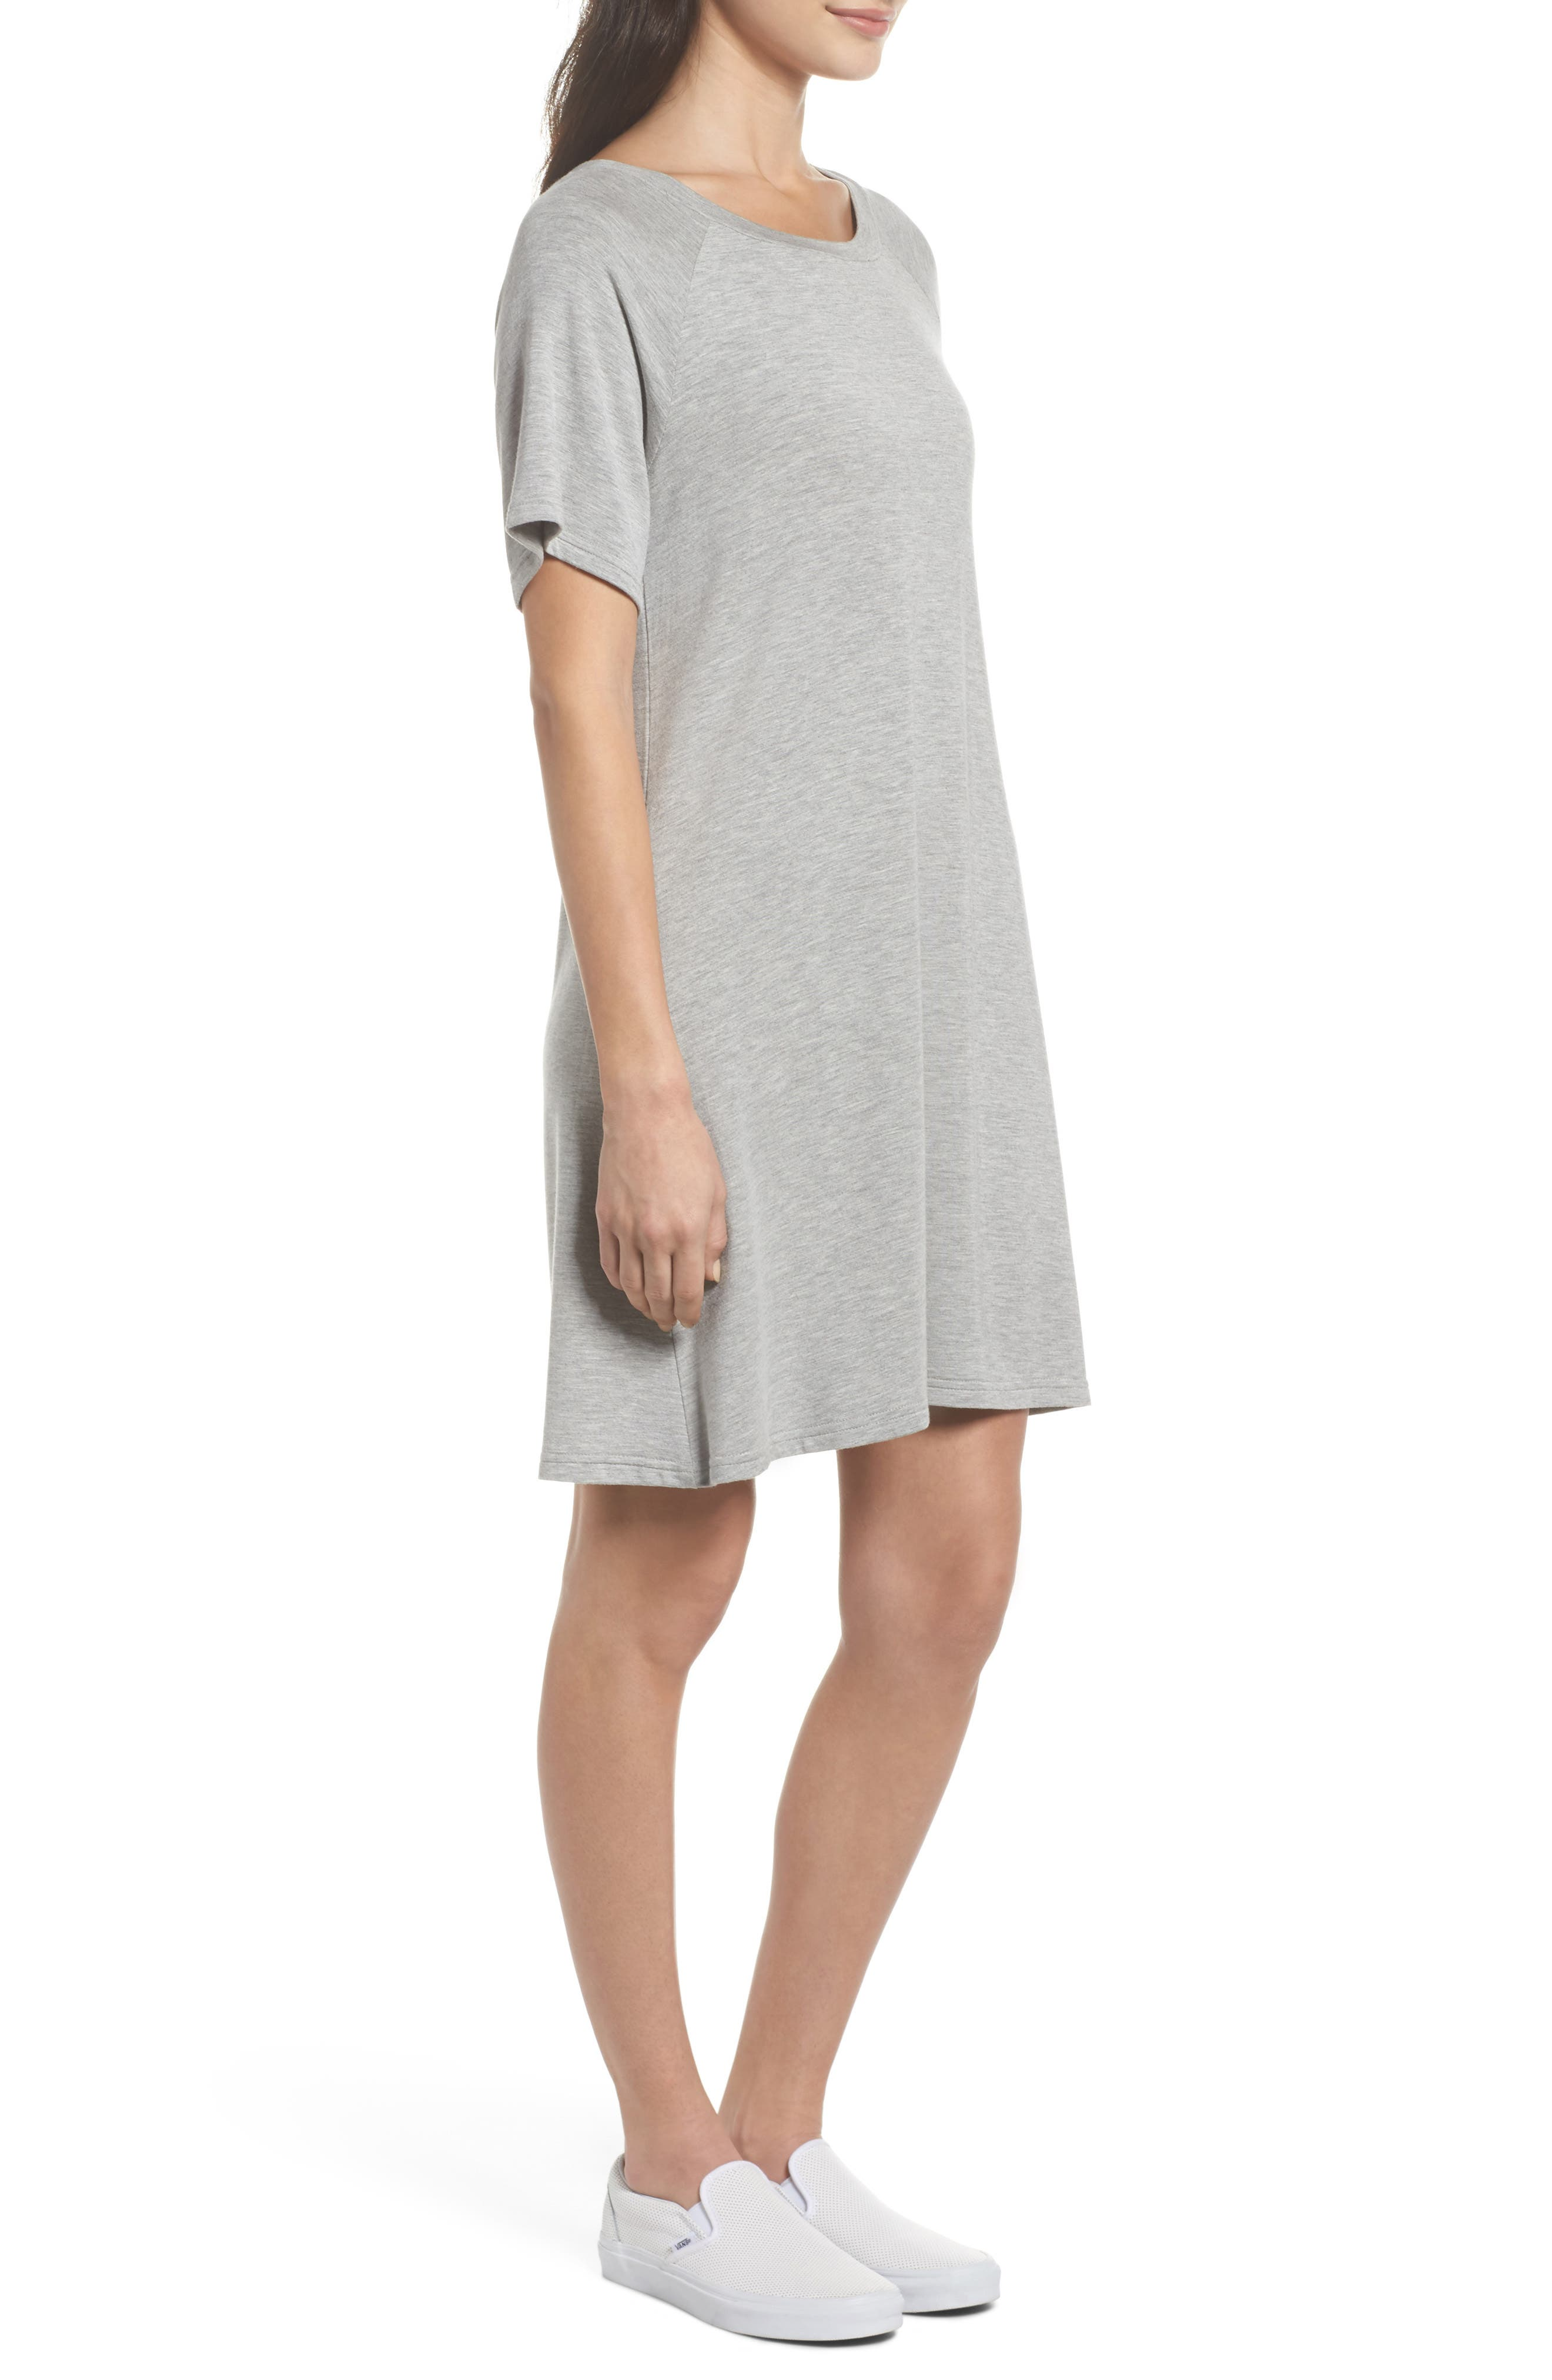 Greer Knit Shift Dress,                             Alternate thumbnail 3, color,                             Light Heather Grey